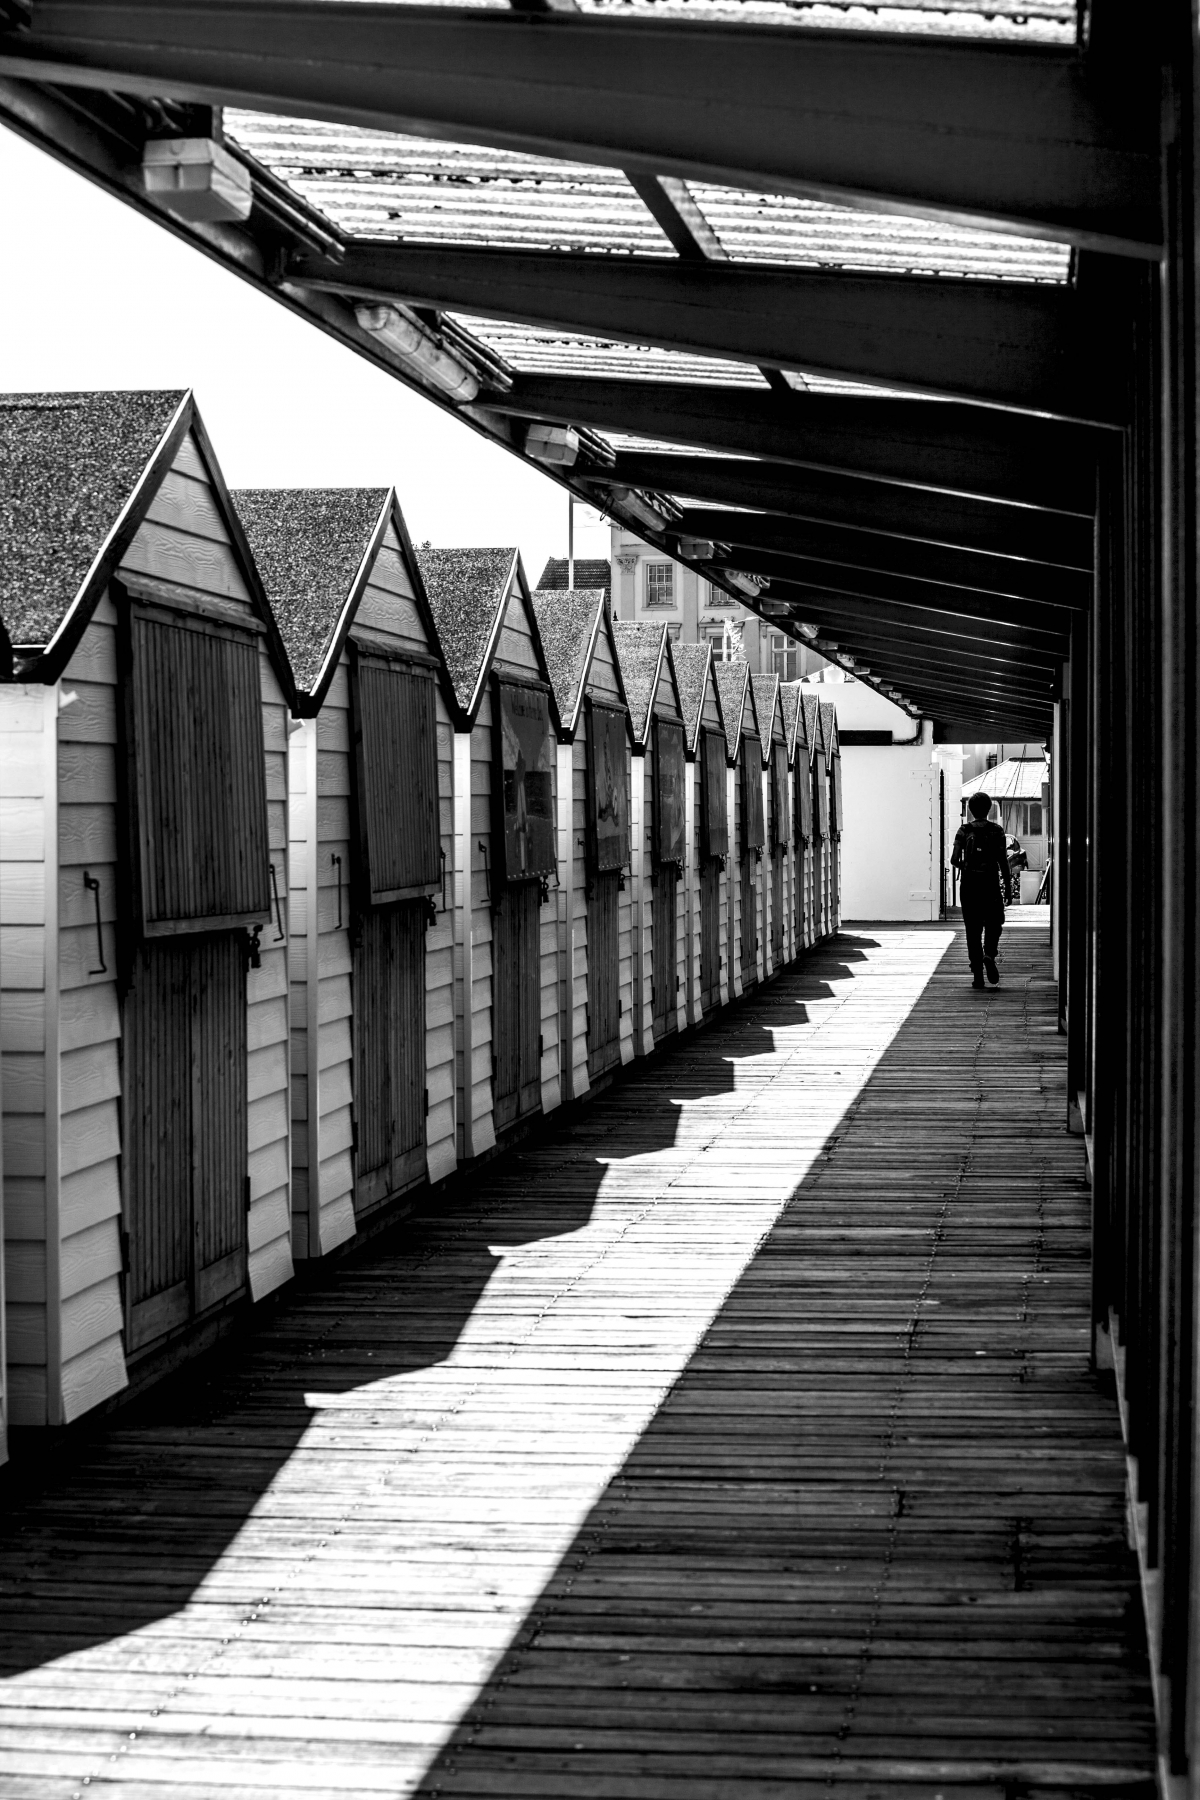 'Beach Huts' by Jamie Sheehy